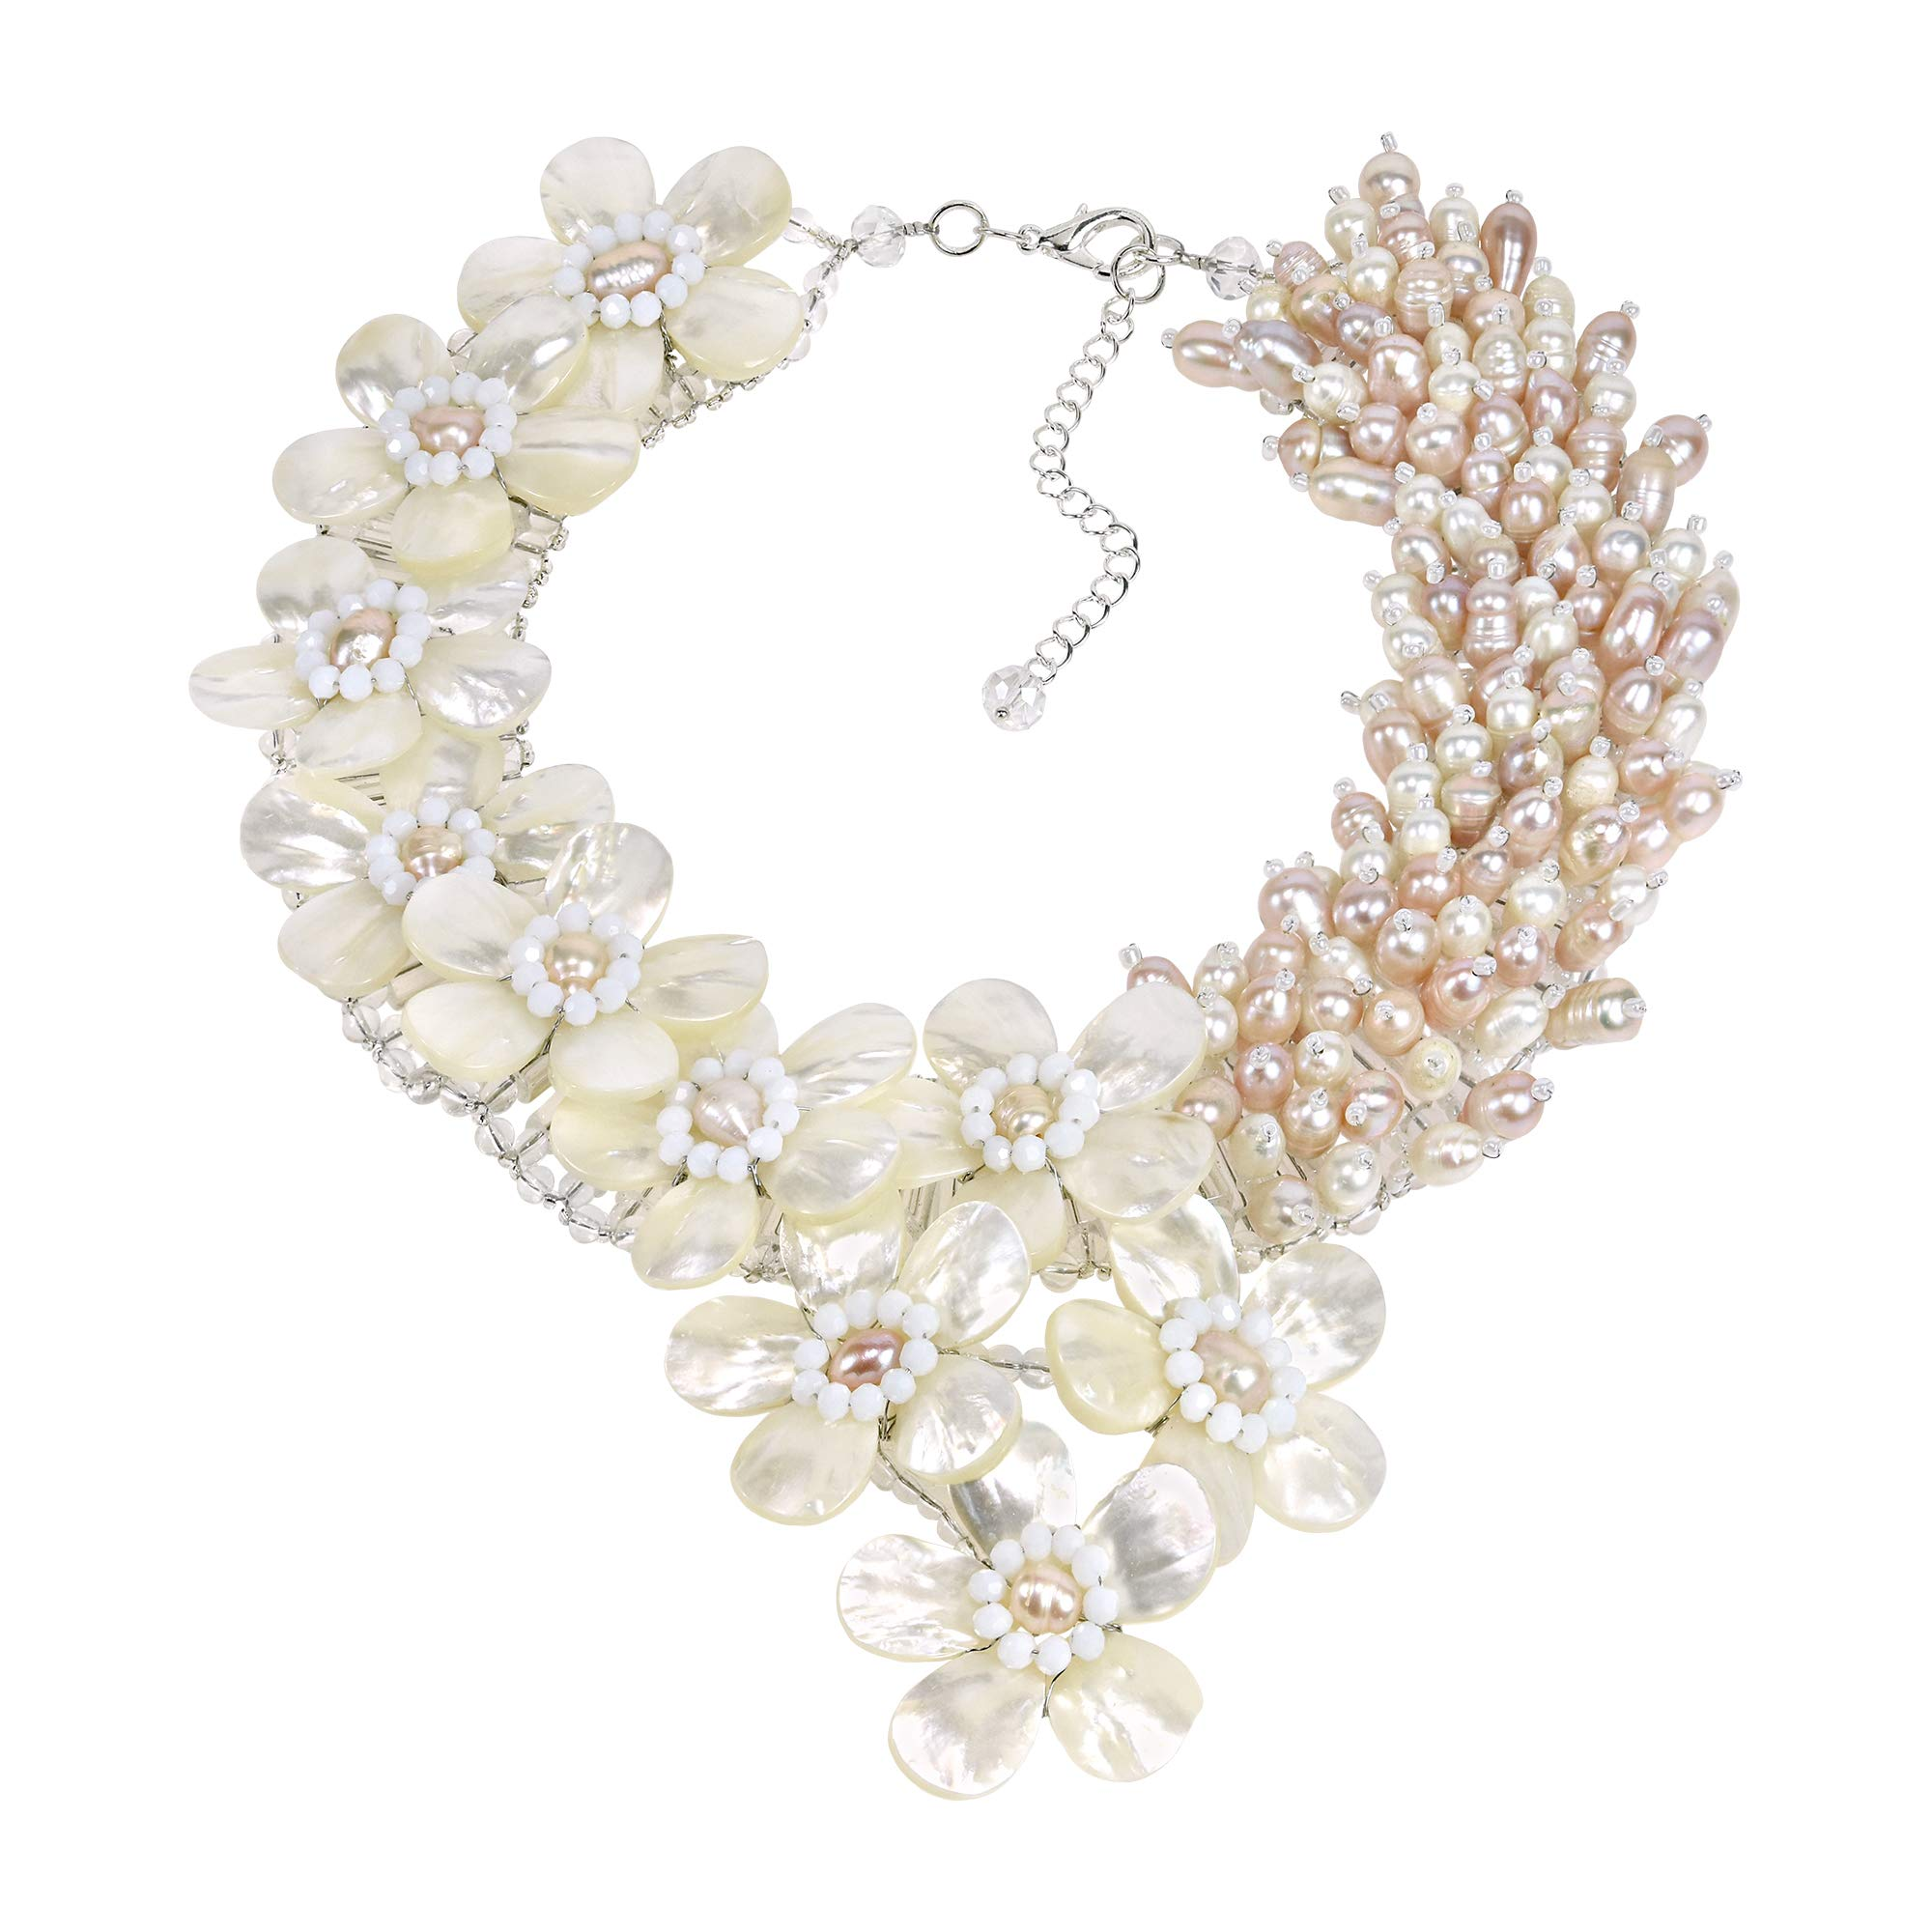 AeraVida Elegant Blush Romance Mother of Pearl & Cultured Freshwater Pearl Floral Collar Necklace